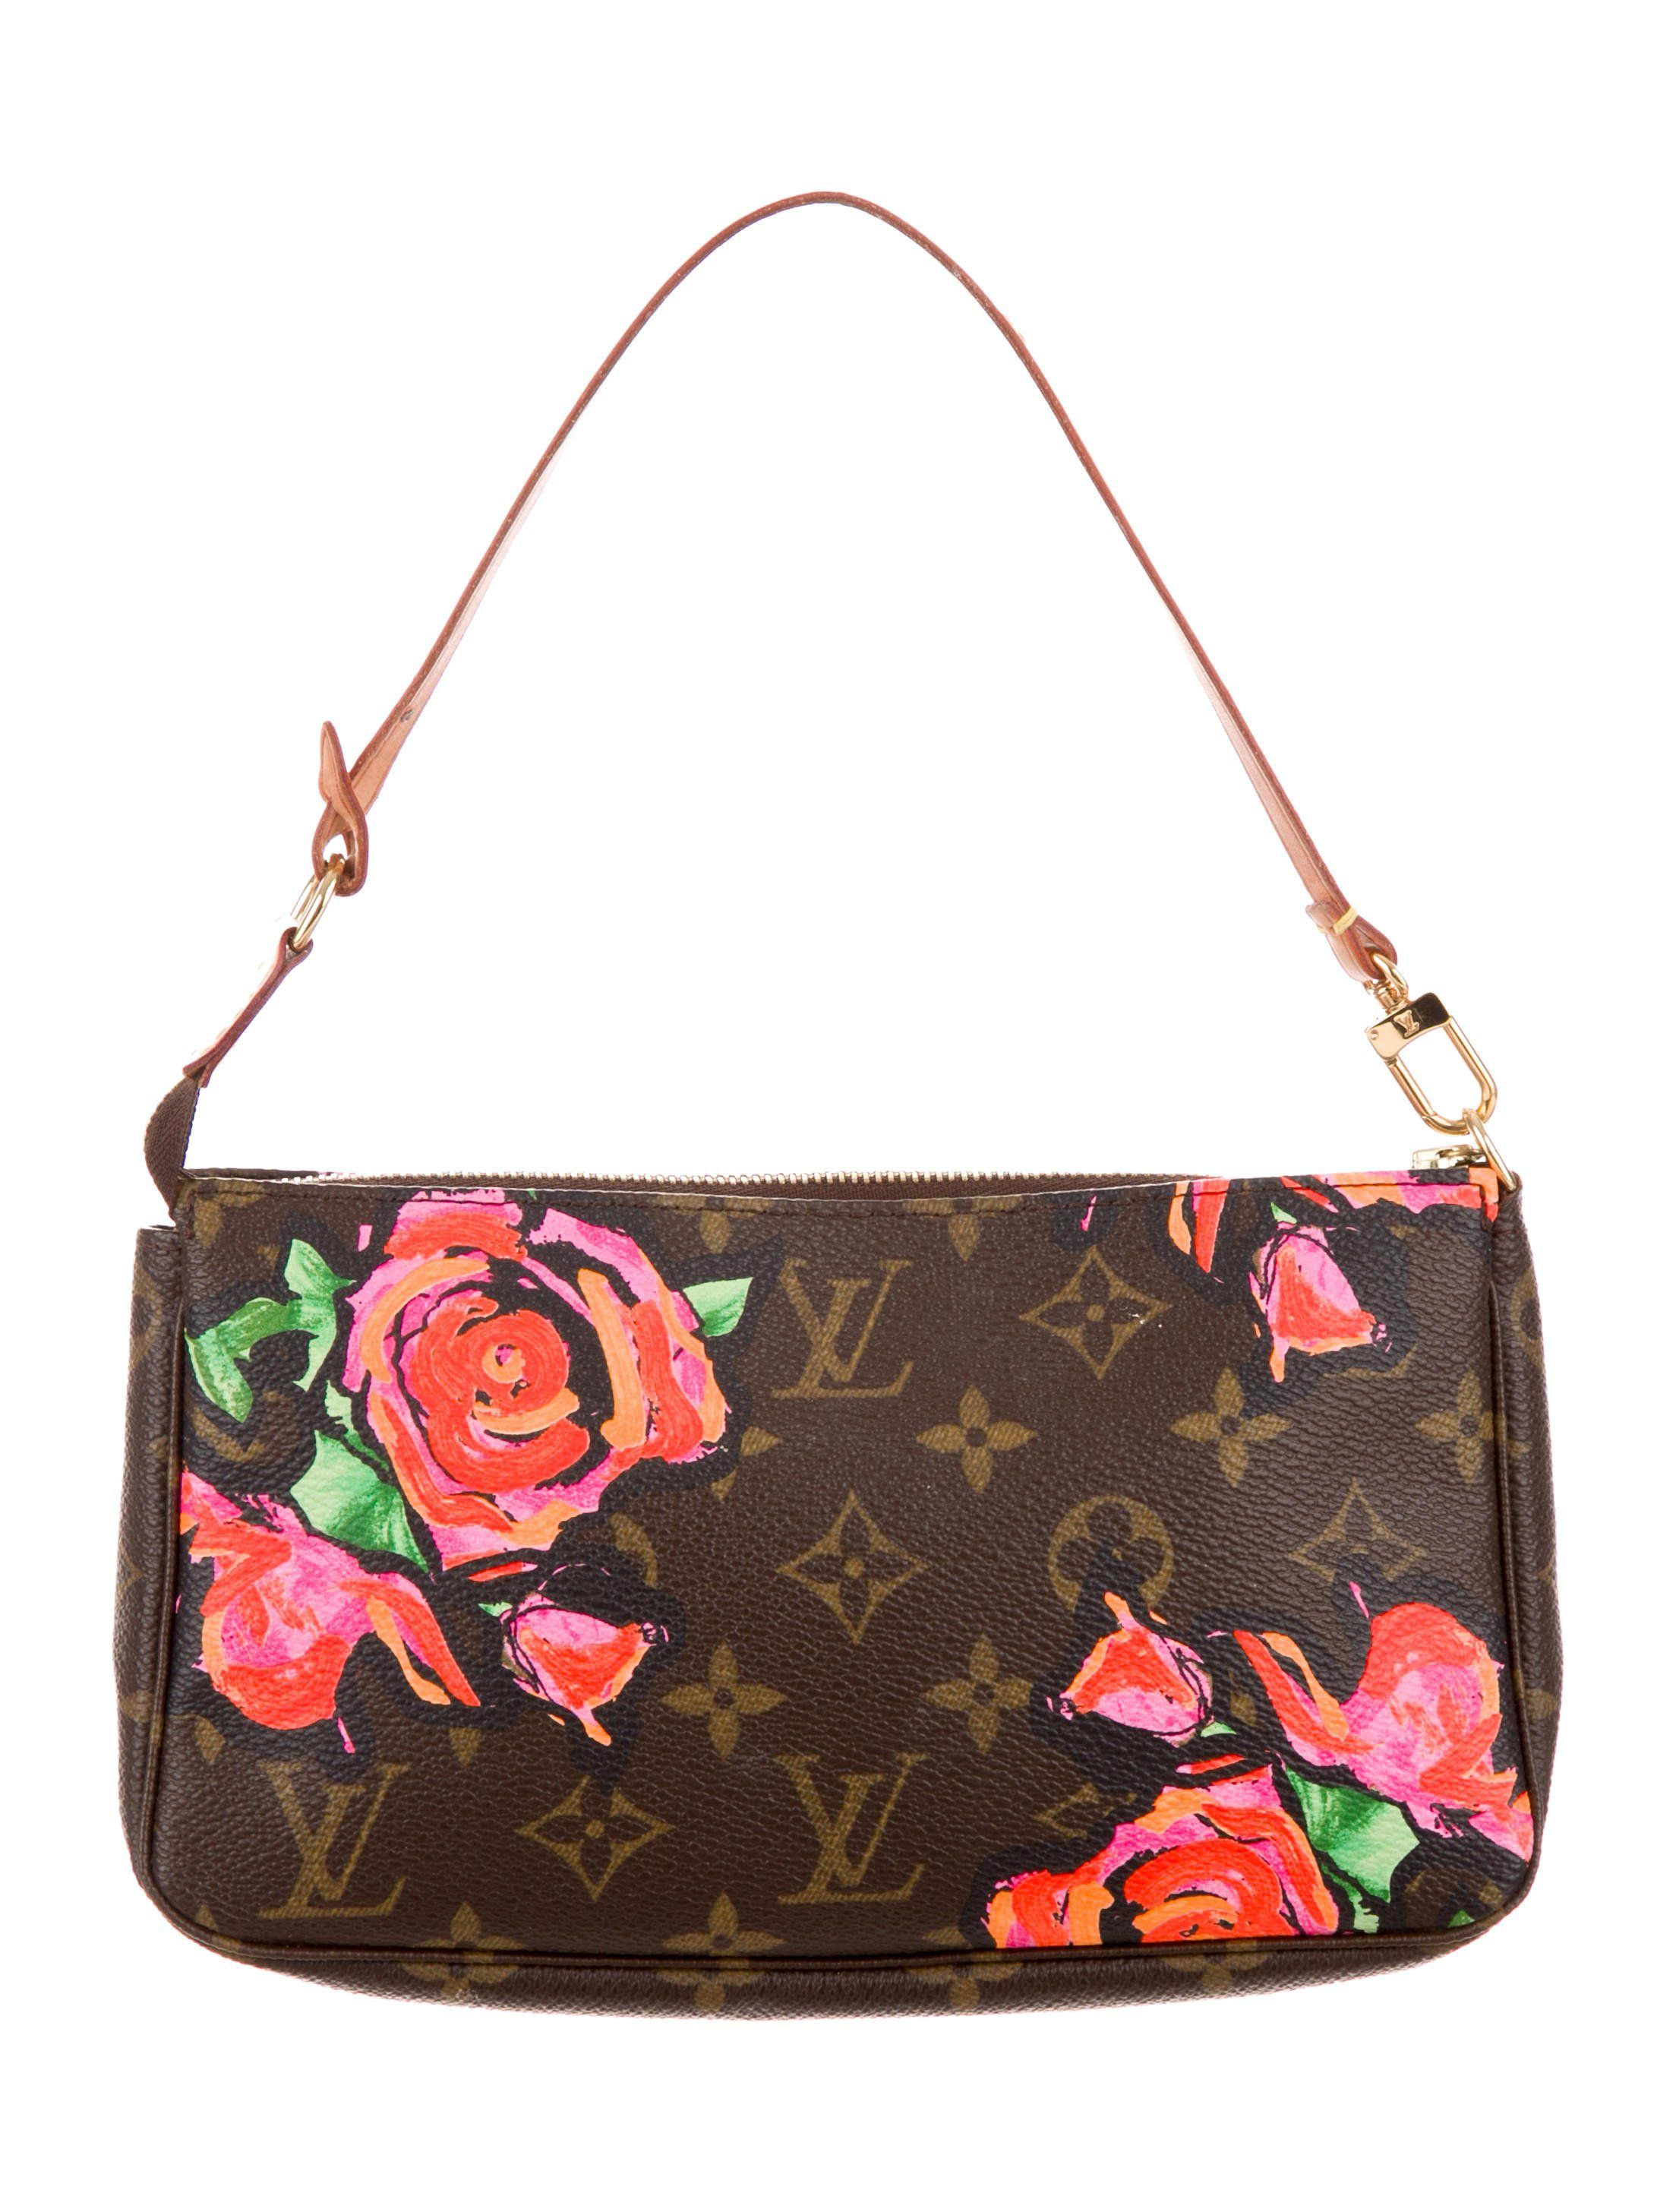 769a20c0023b From the Stephen Sprouse Collection. Brown and tan monogram coated canvas Louis  Vuitton Roses Pochette